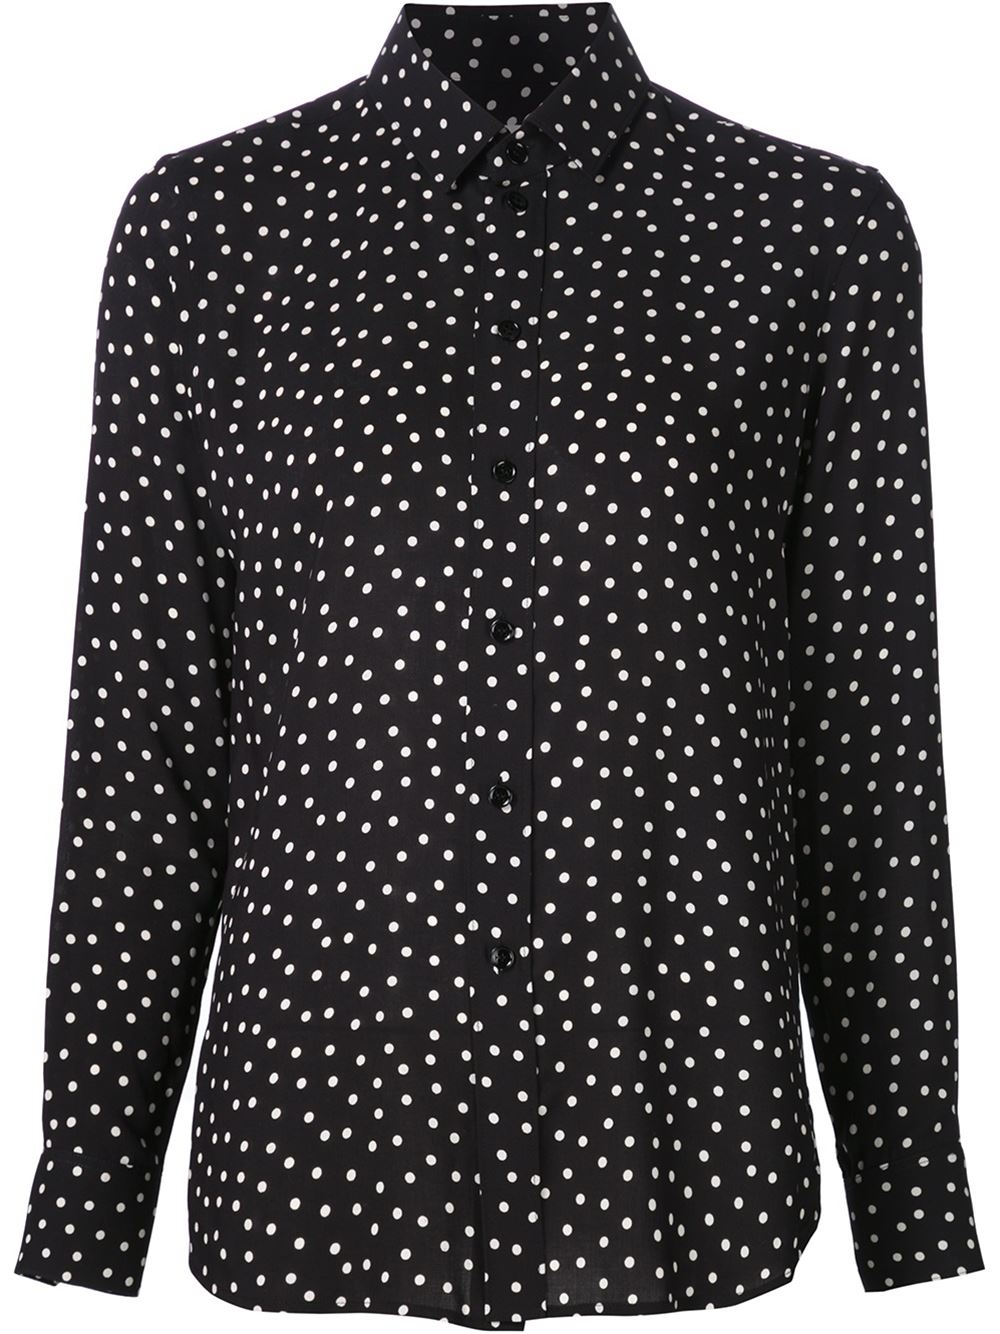 Polka Dot Shirts Men ($ - $): 30 of items - Shop Polka Dot Shirts Men from ALL your favorite stores & find HUGE SAVINGS up to 80% off Polka Dot Shirts Men, including GREAT DEALS like Men's Elie Milano Italy Polka dots & Plaid Men's Slim Fit Shirts 6 2XL Long Navy and musterd dots Cotton ($).